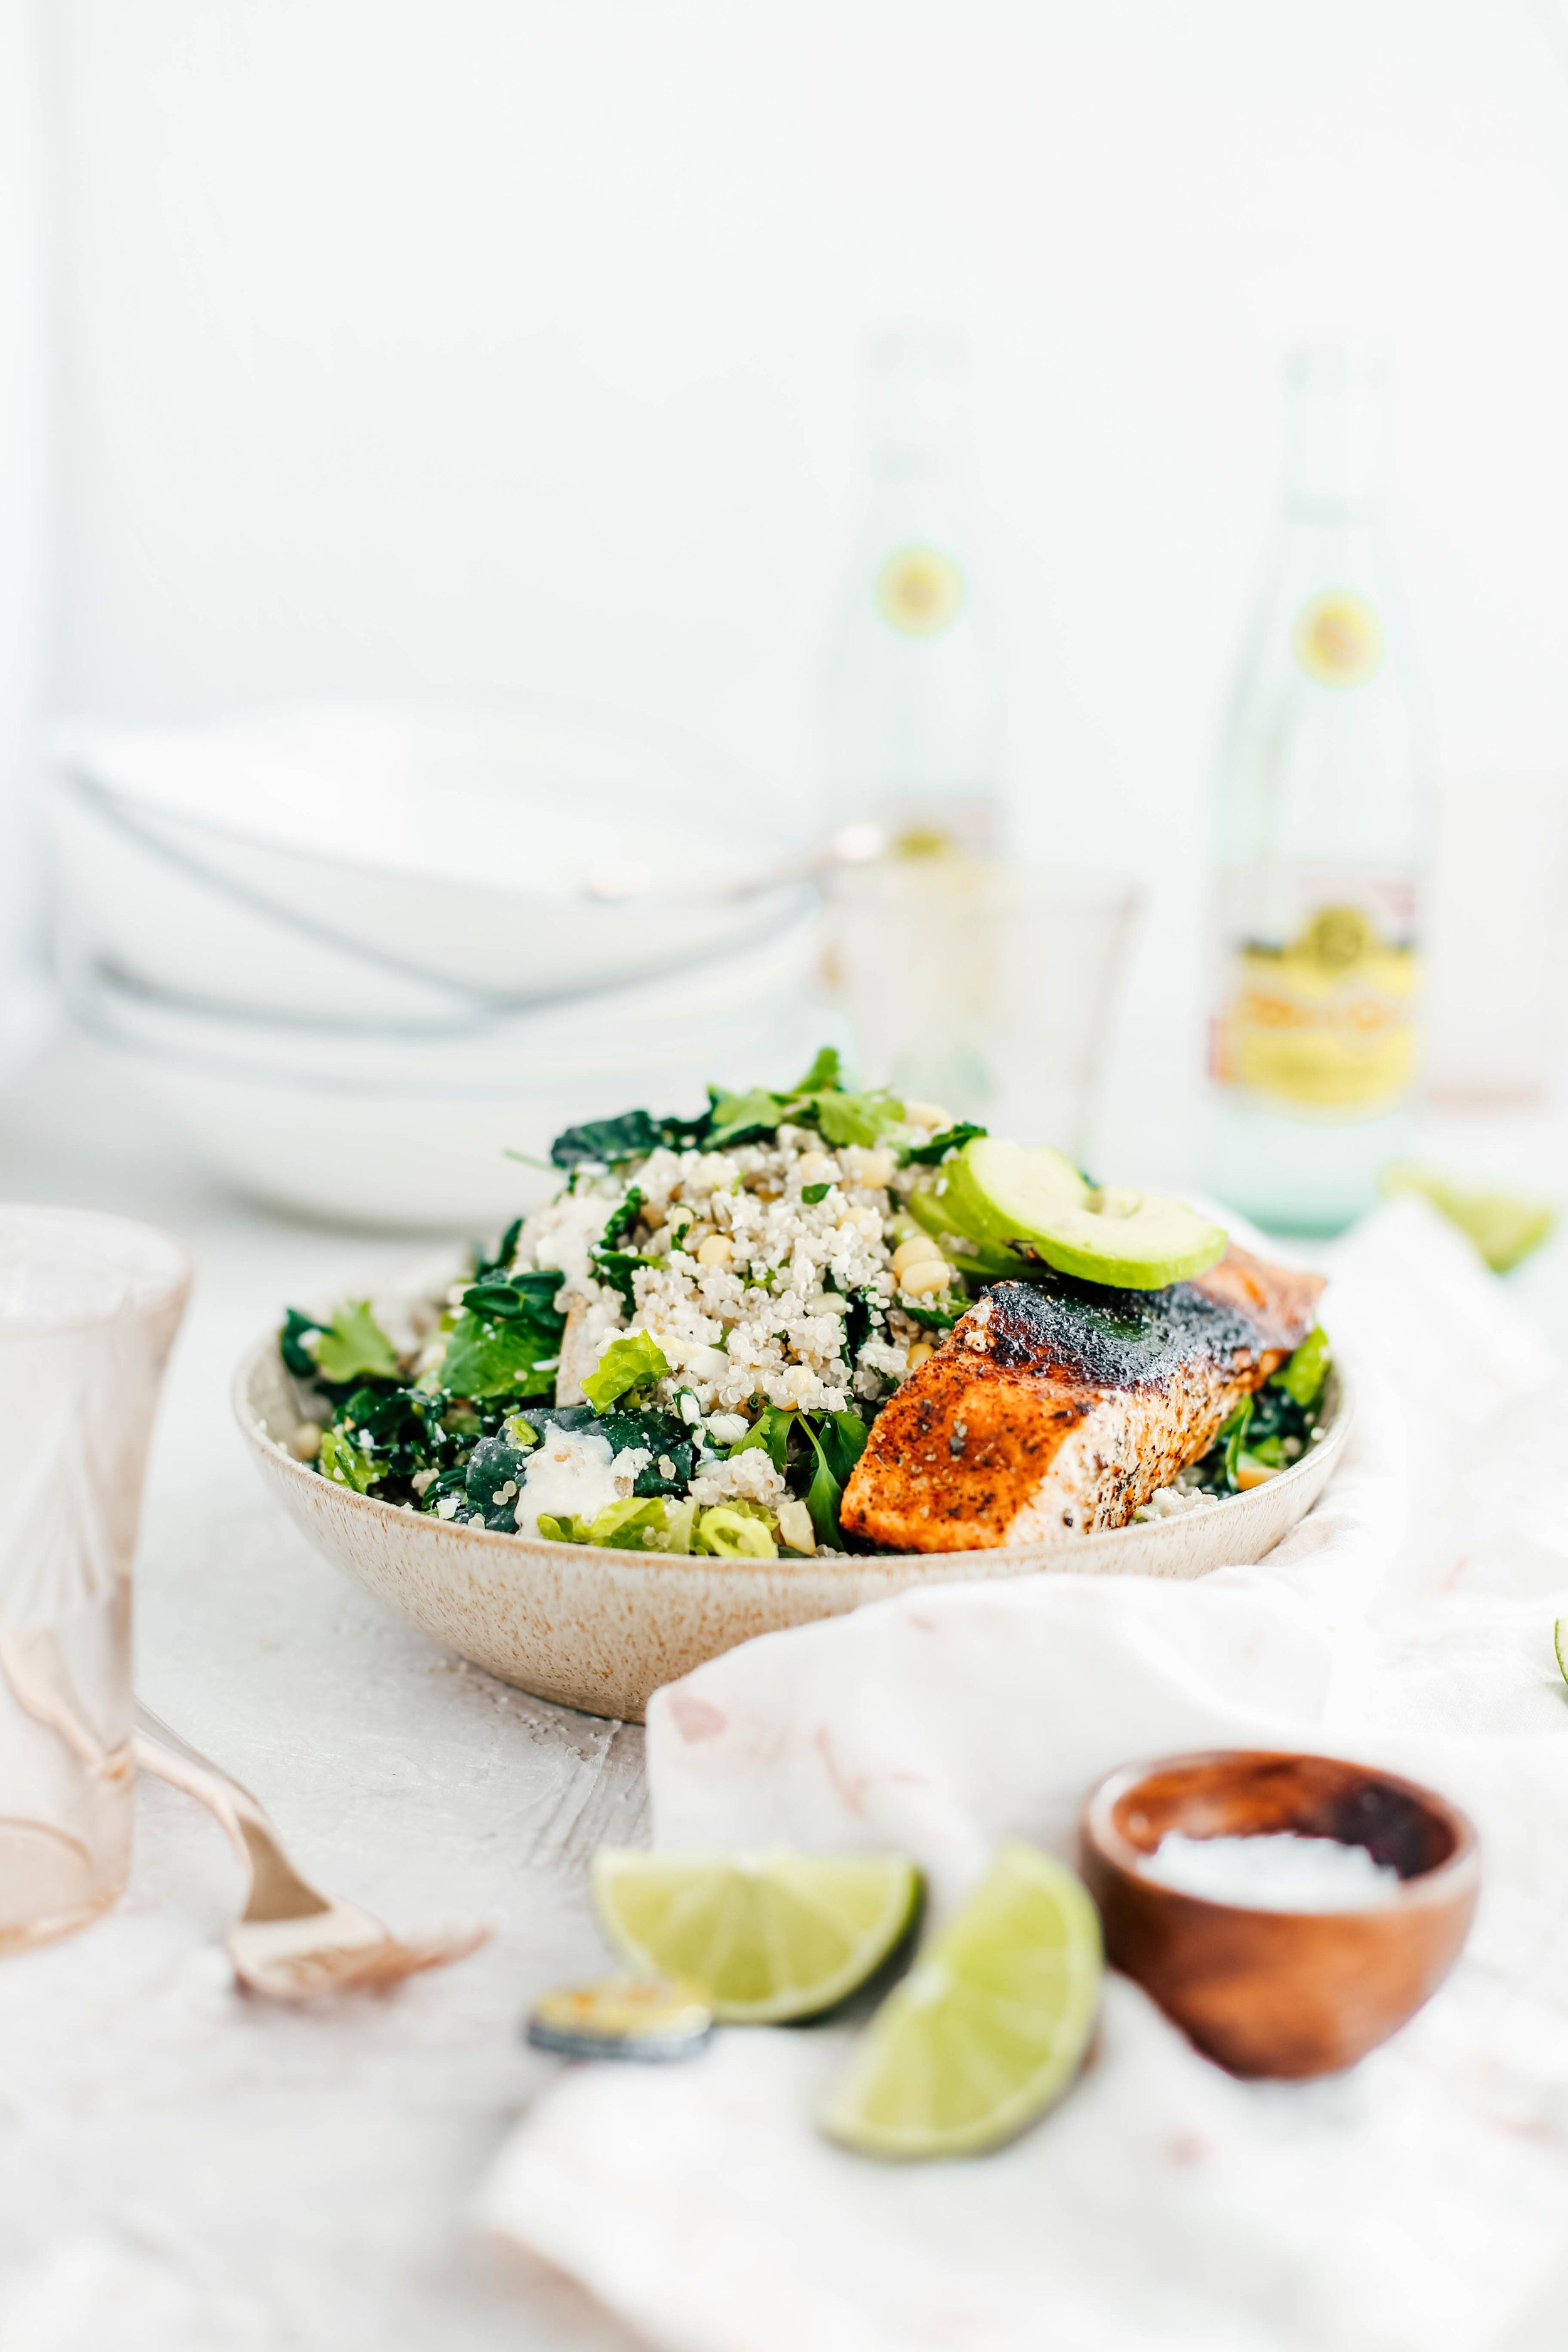 Kale Caesar Salad with Golden Corn and Quinoa